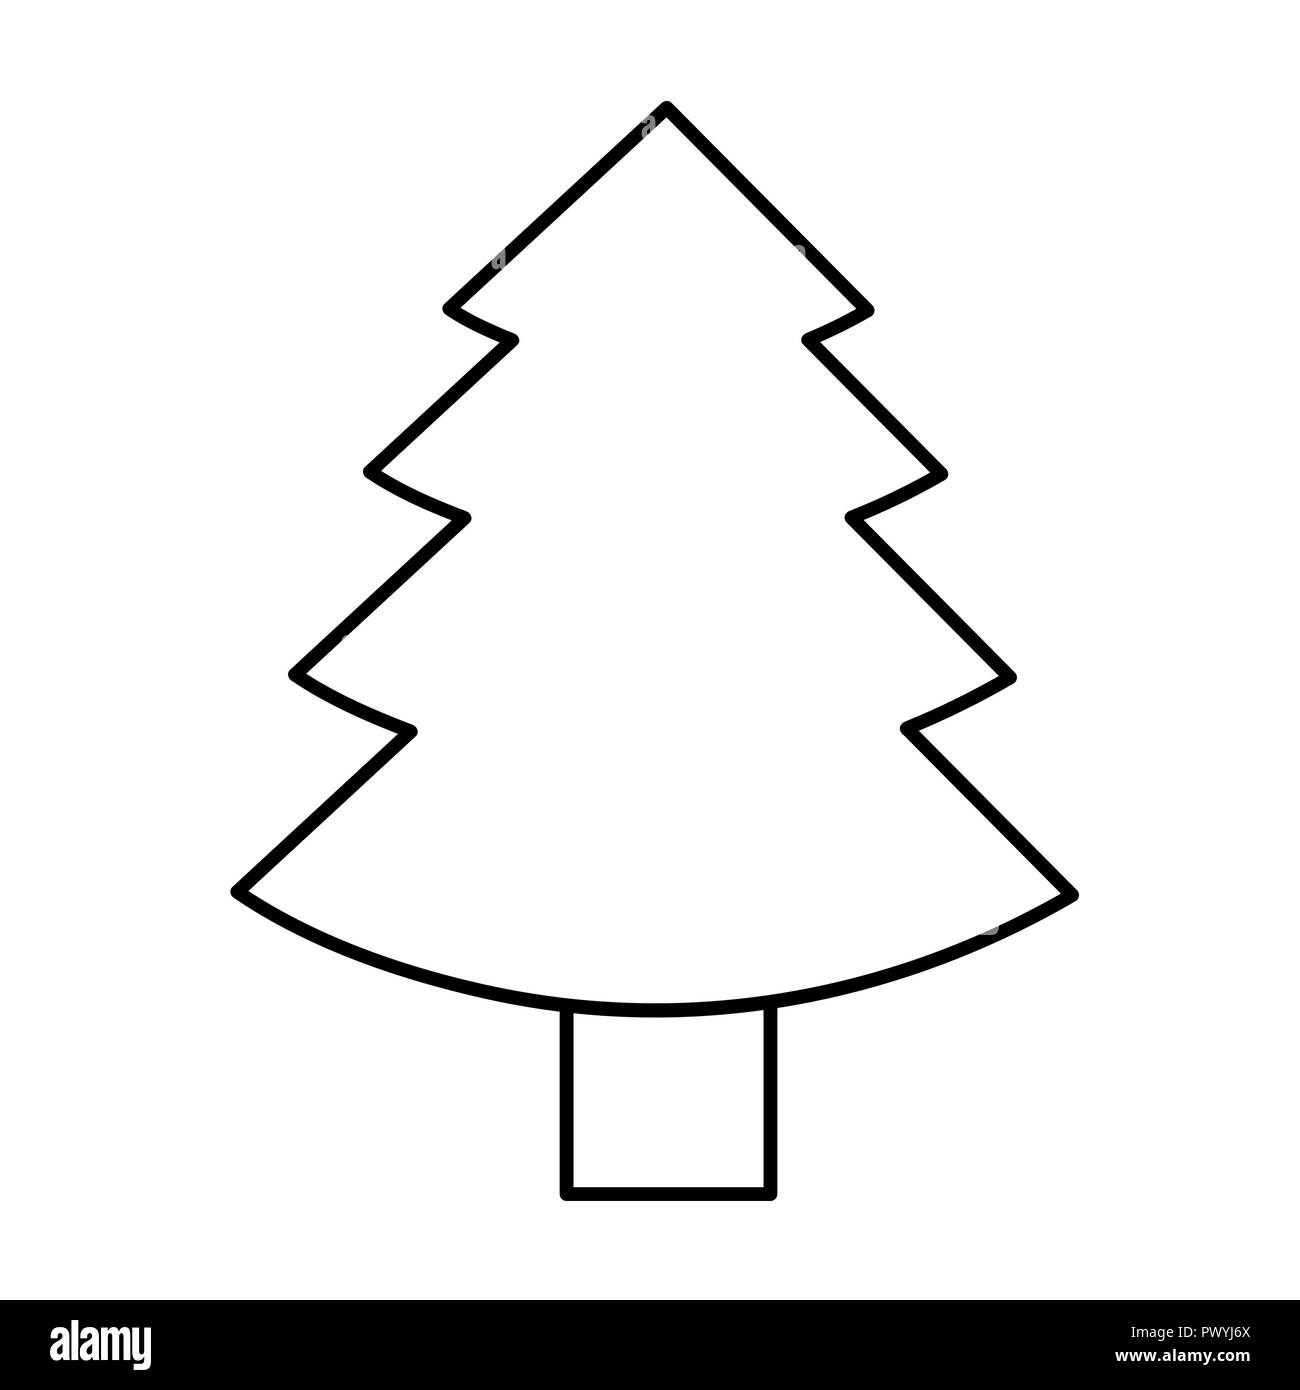 Christmas Tree Fir Simple Icon Pictogram Outline Vector Illustration Stock Vector Image Art Alamy